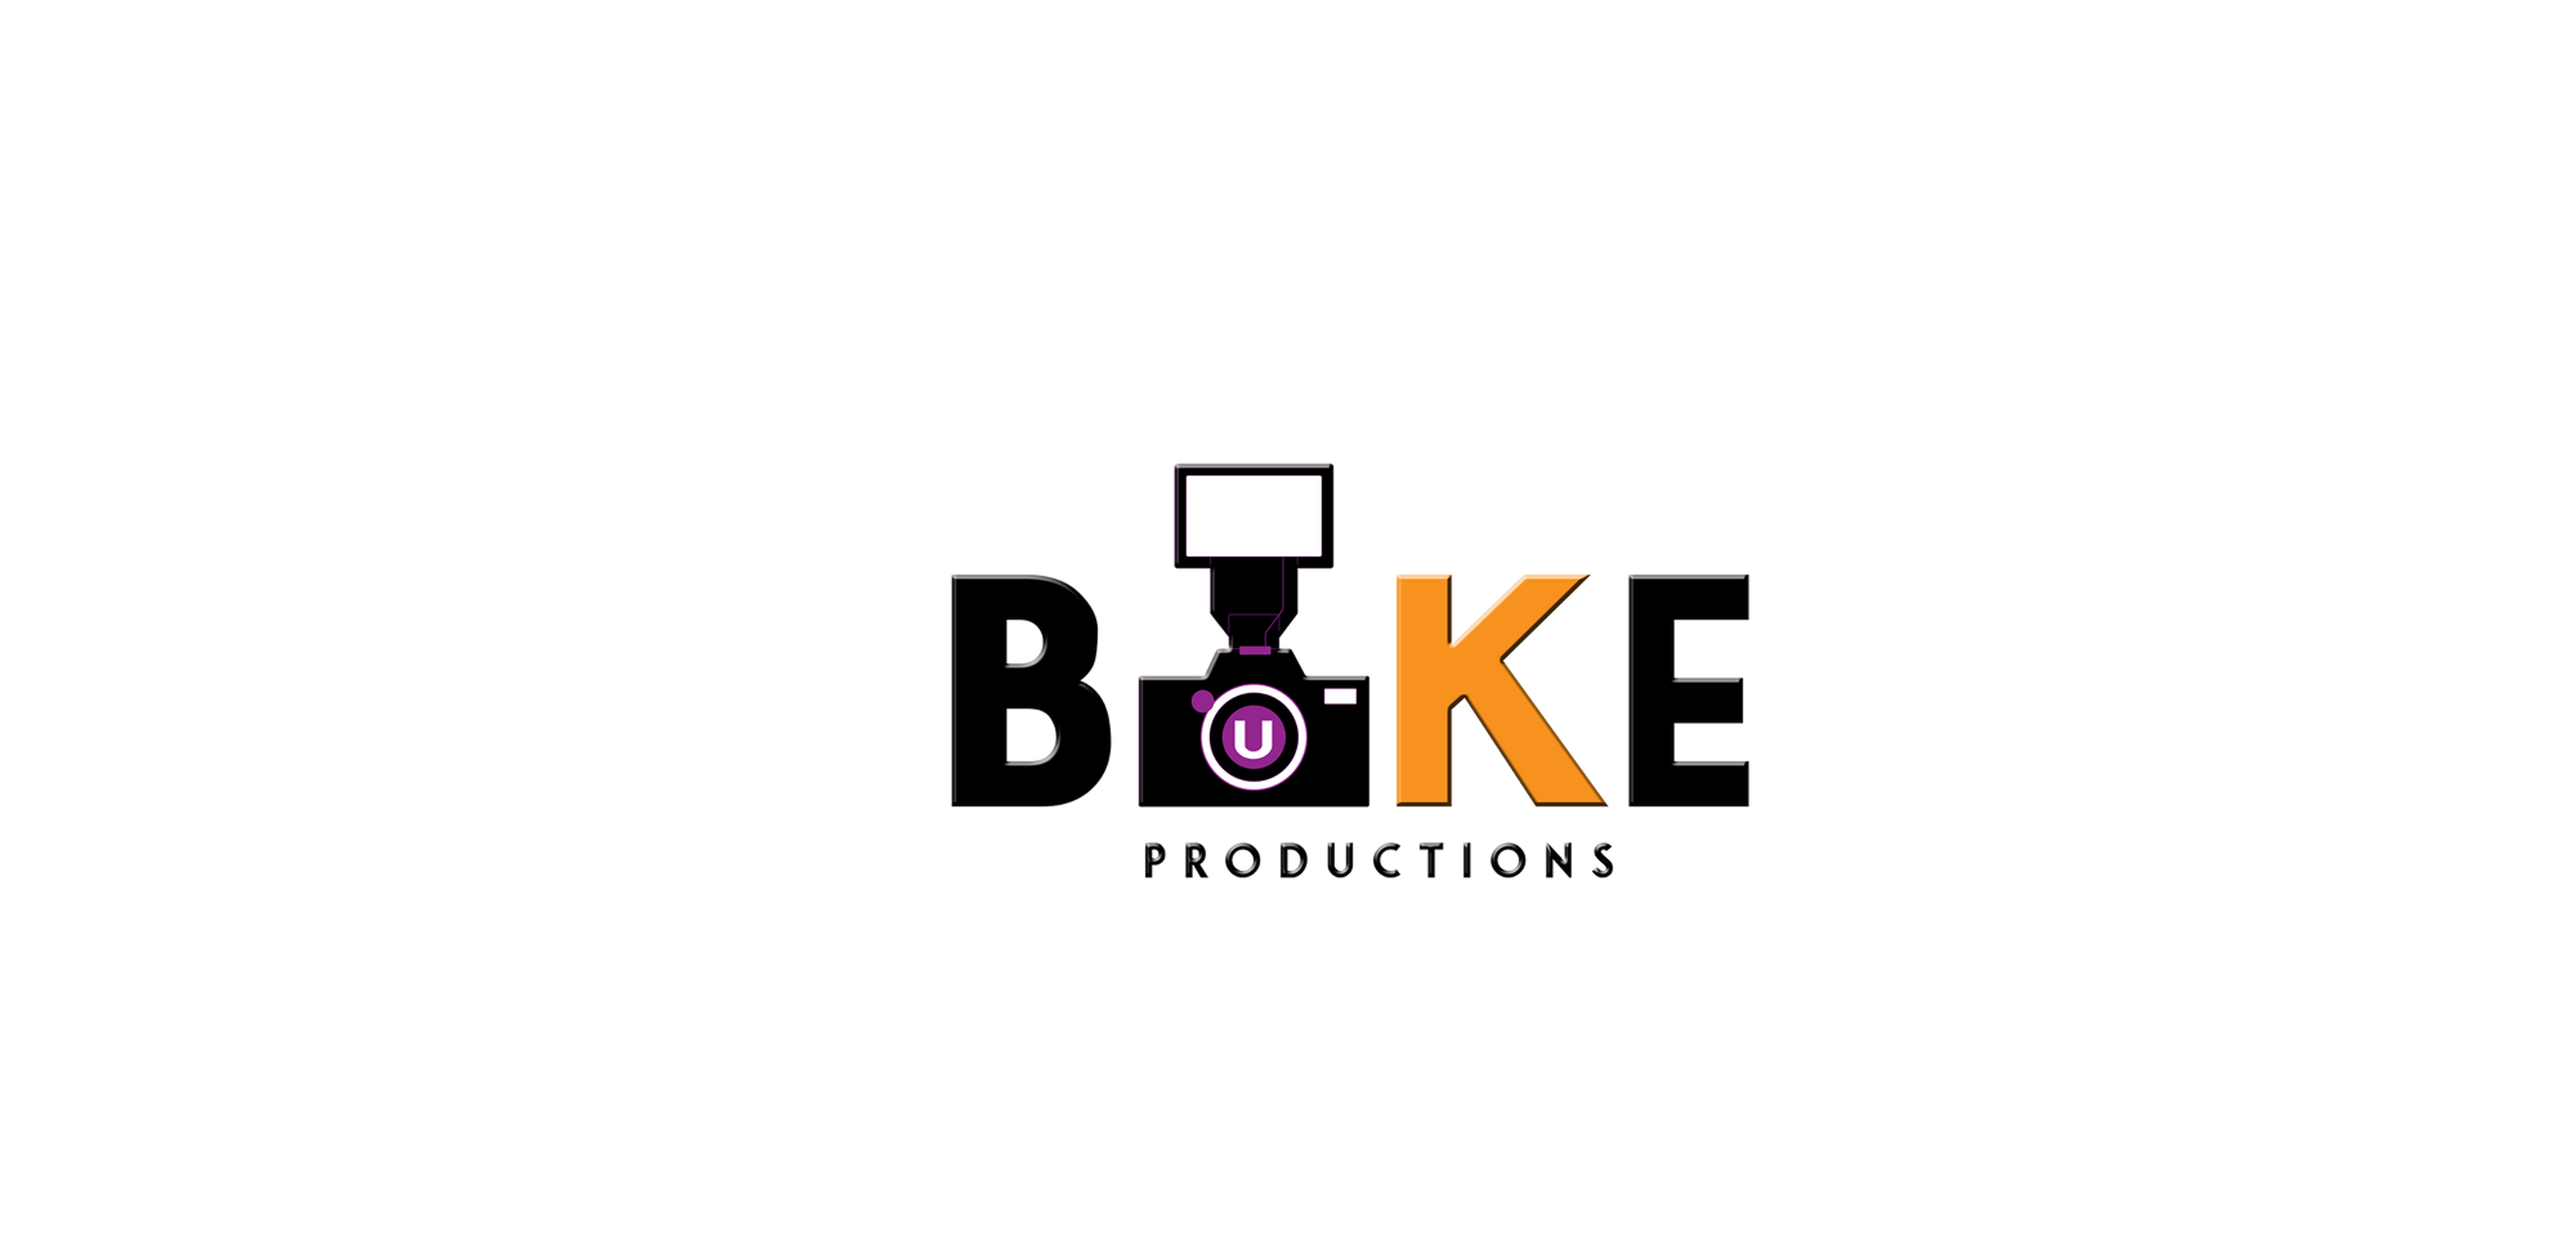 MUSIC VIDEO & VIDEOGRAPHY